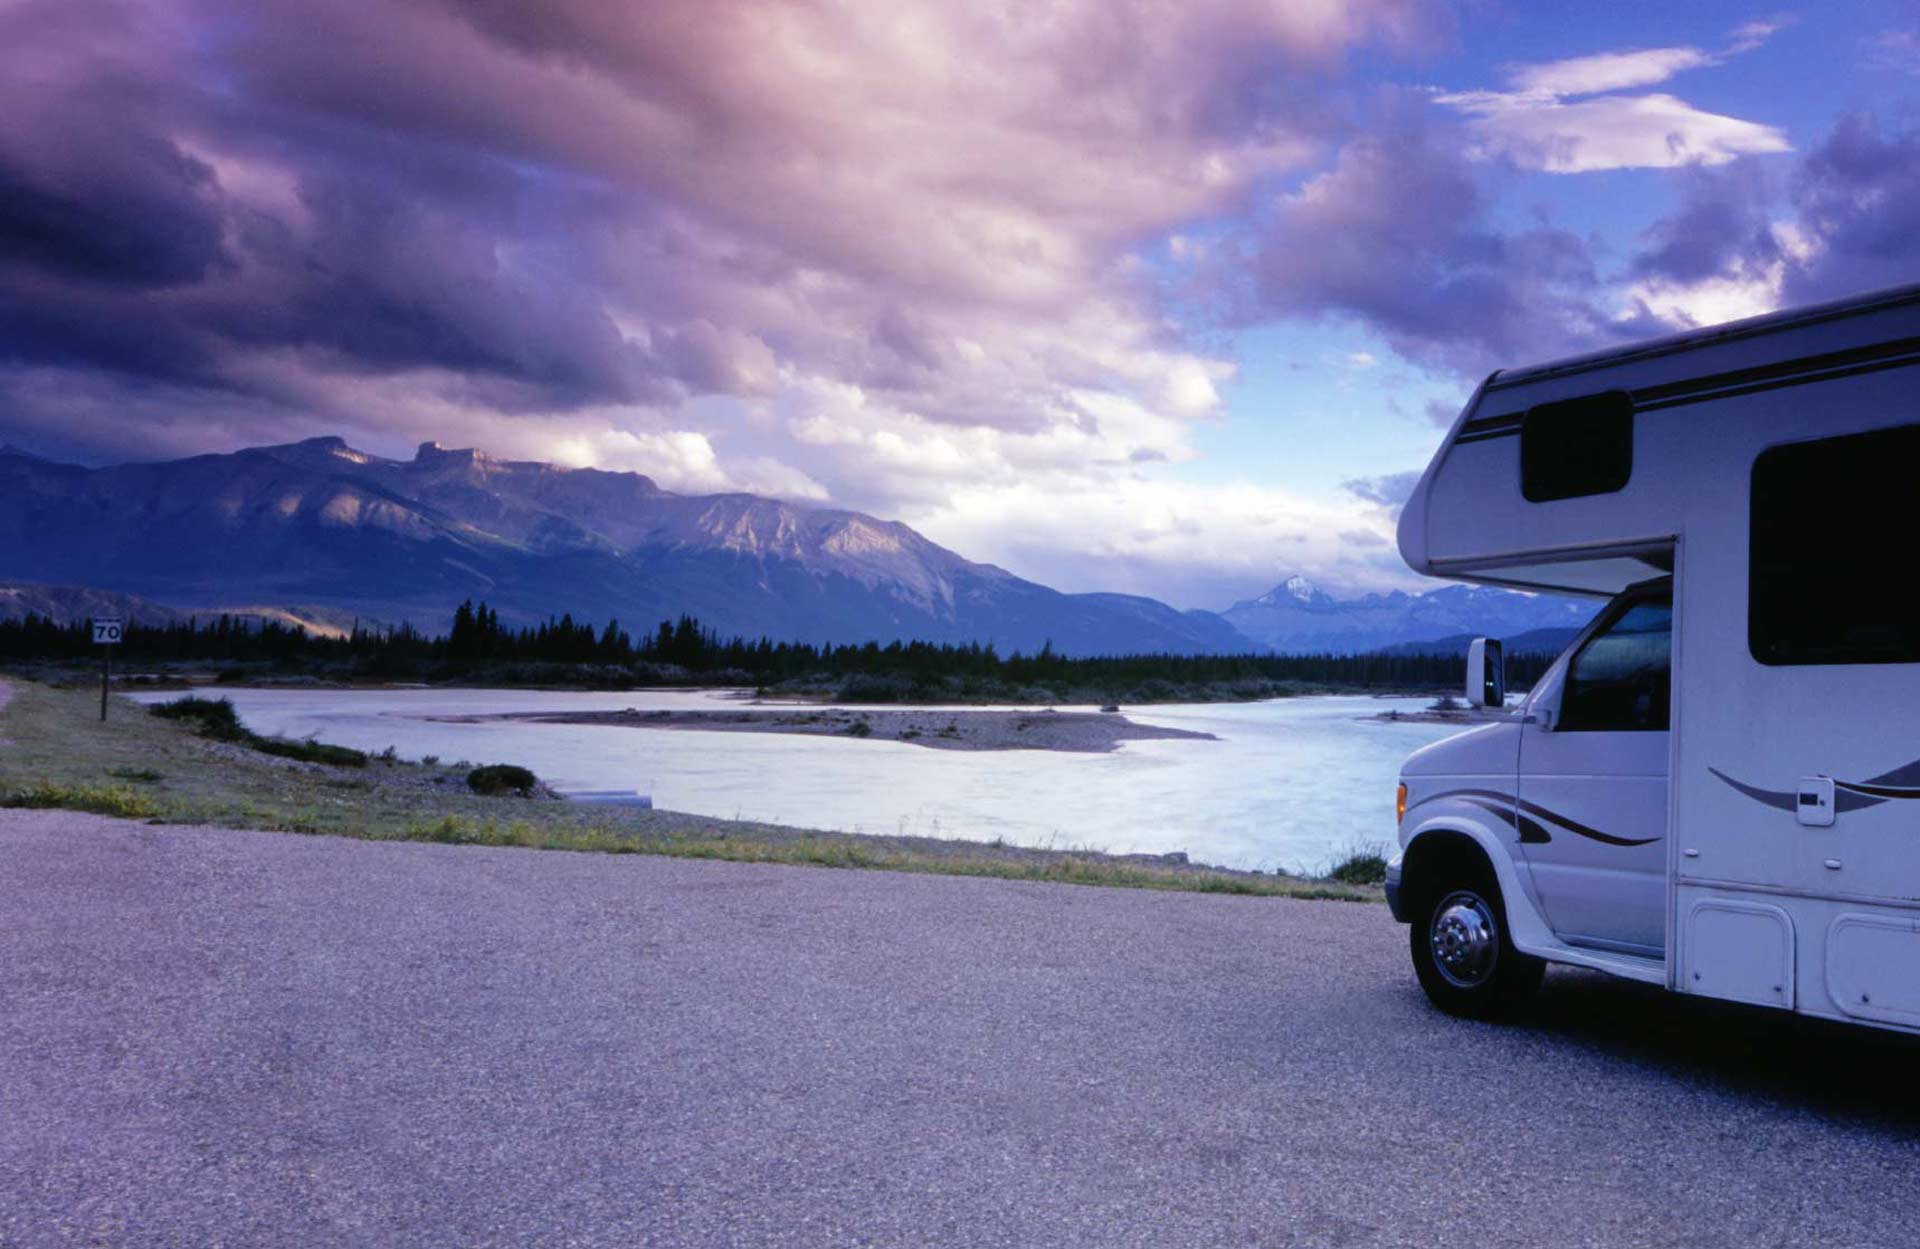 Goodyear Rv Tires Performance Durability And Comfort